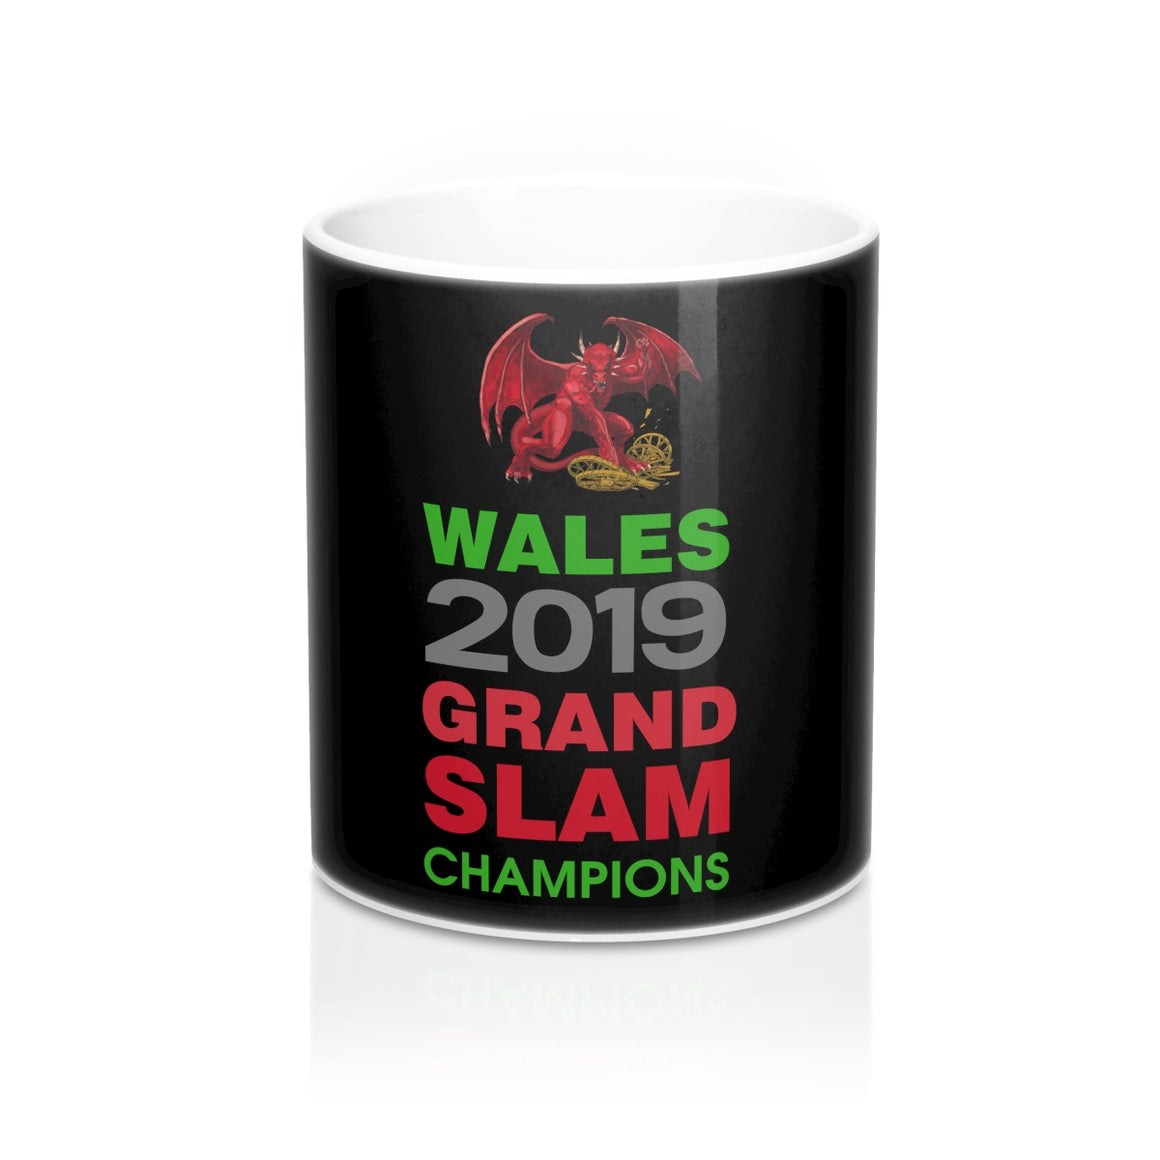 Wales 2019 Grand Slam Champions Mug 11oz Black